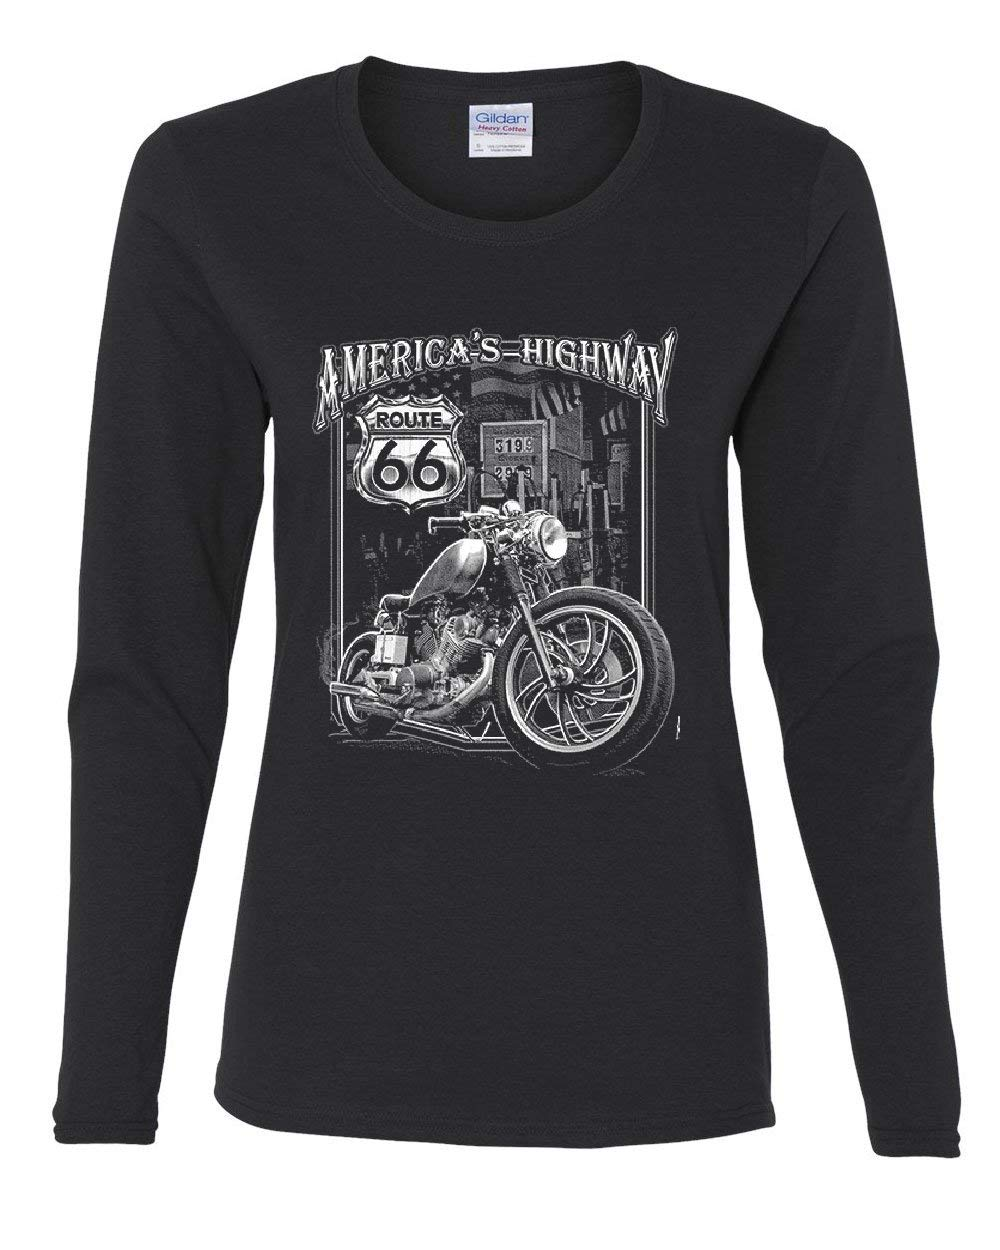 America S Highway Tee Route 66 Mc Motorcycle Chopper Bobber 1321 Shirts